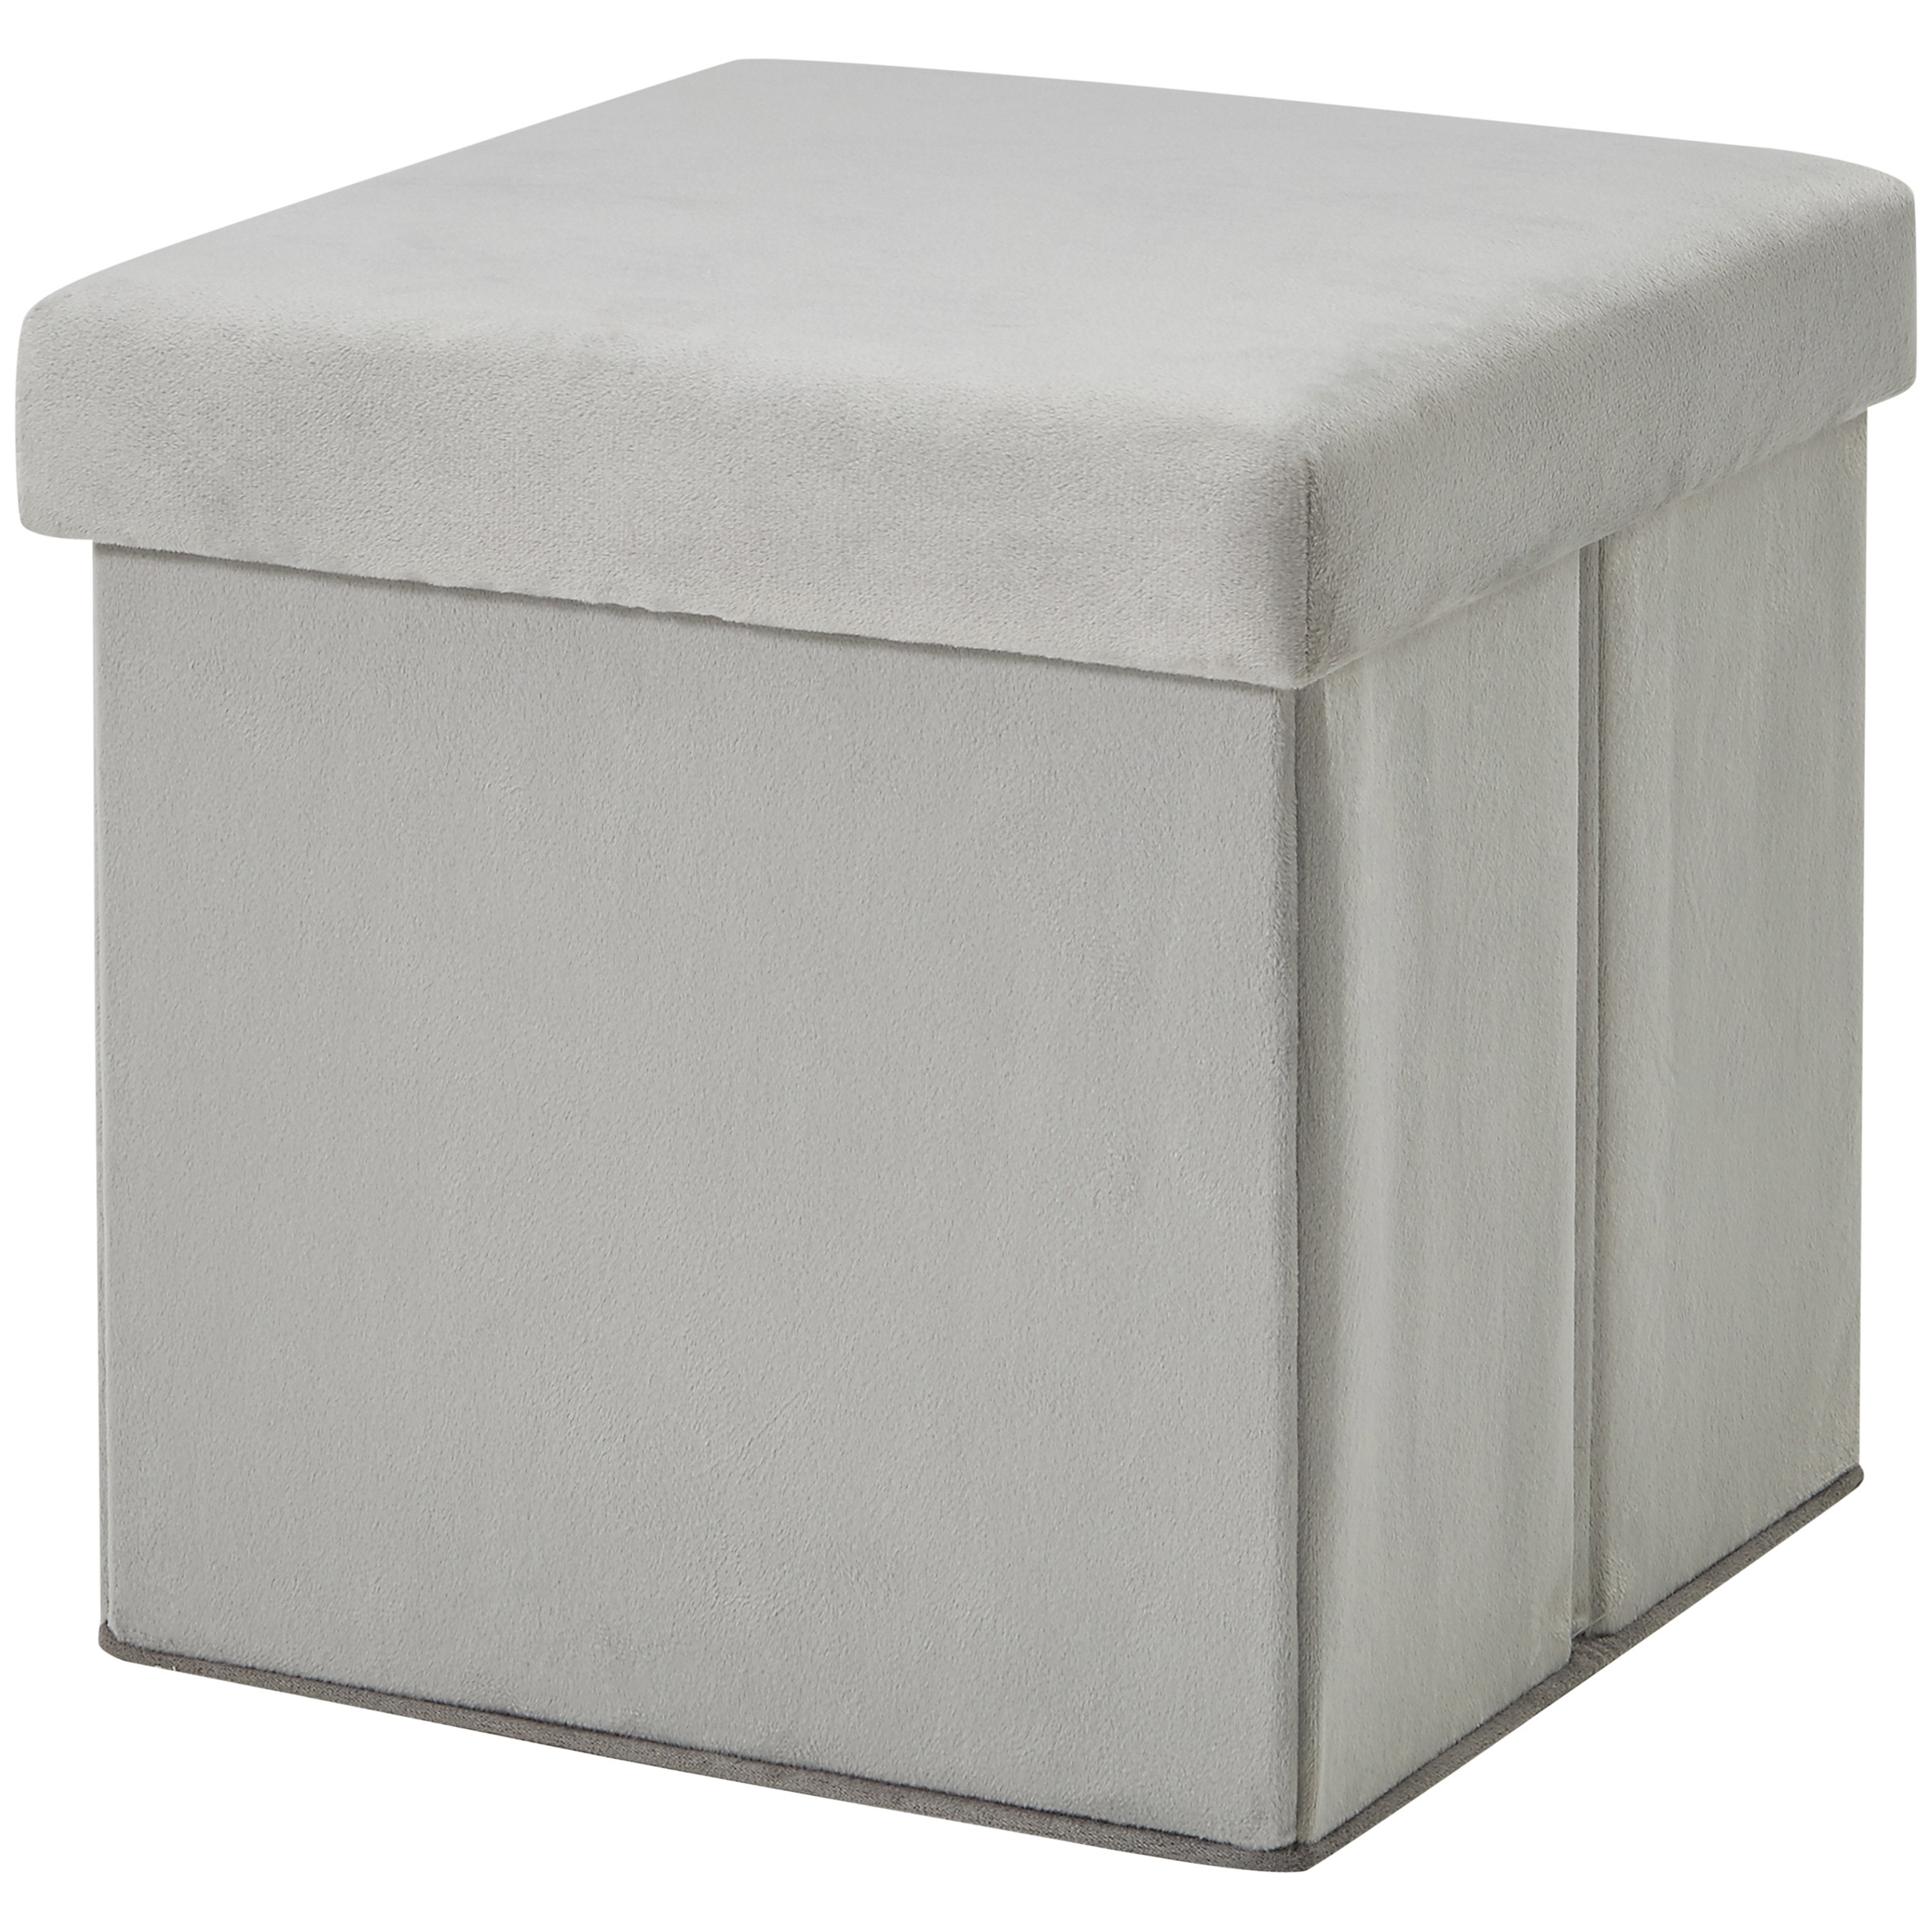 Charmant Mainstays Ultra Collapsible Storage Ottoman, Gray Faux Suede